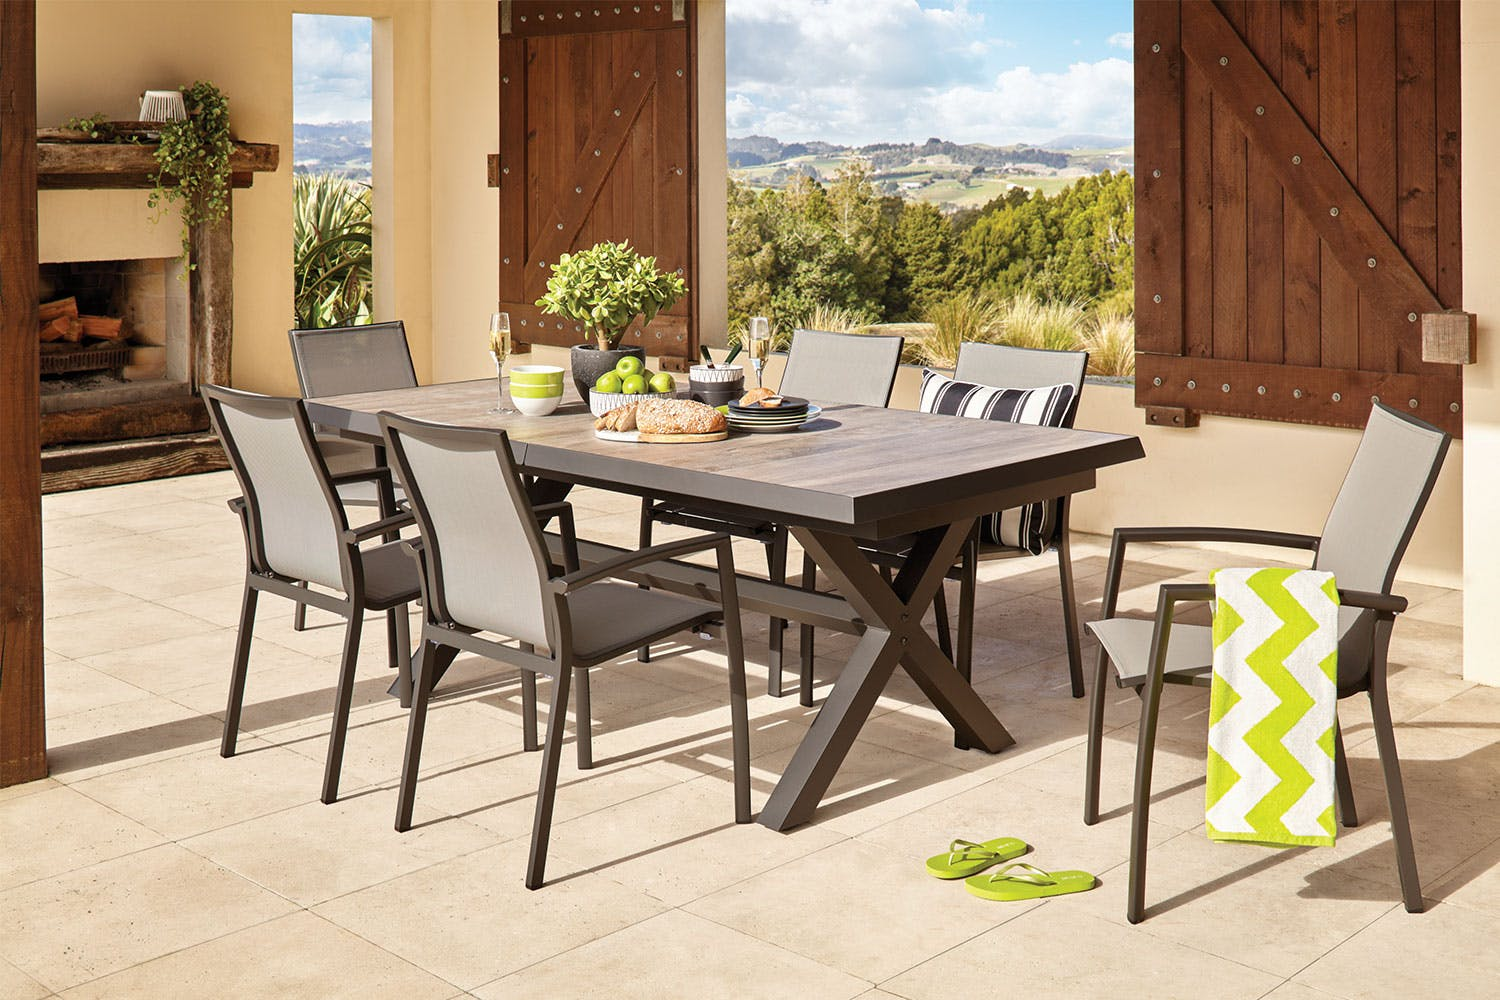 Parsons 9 piece outdoor dining setting harvey norman new zealand